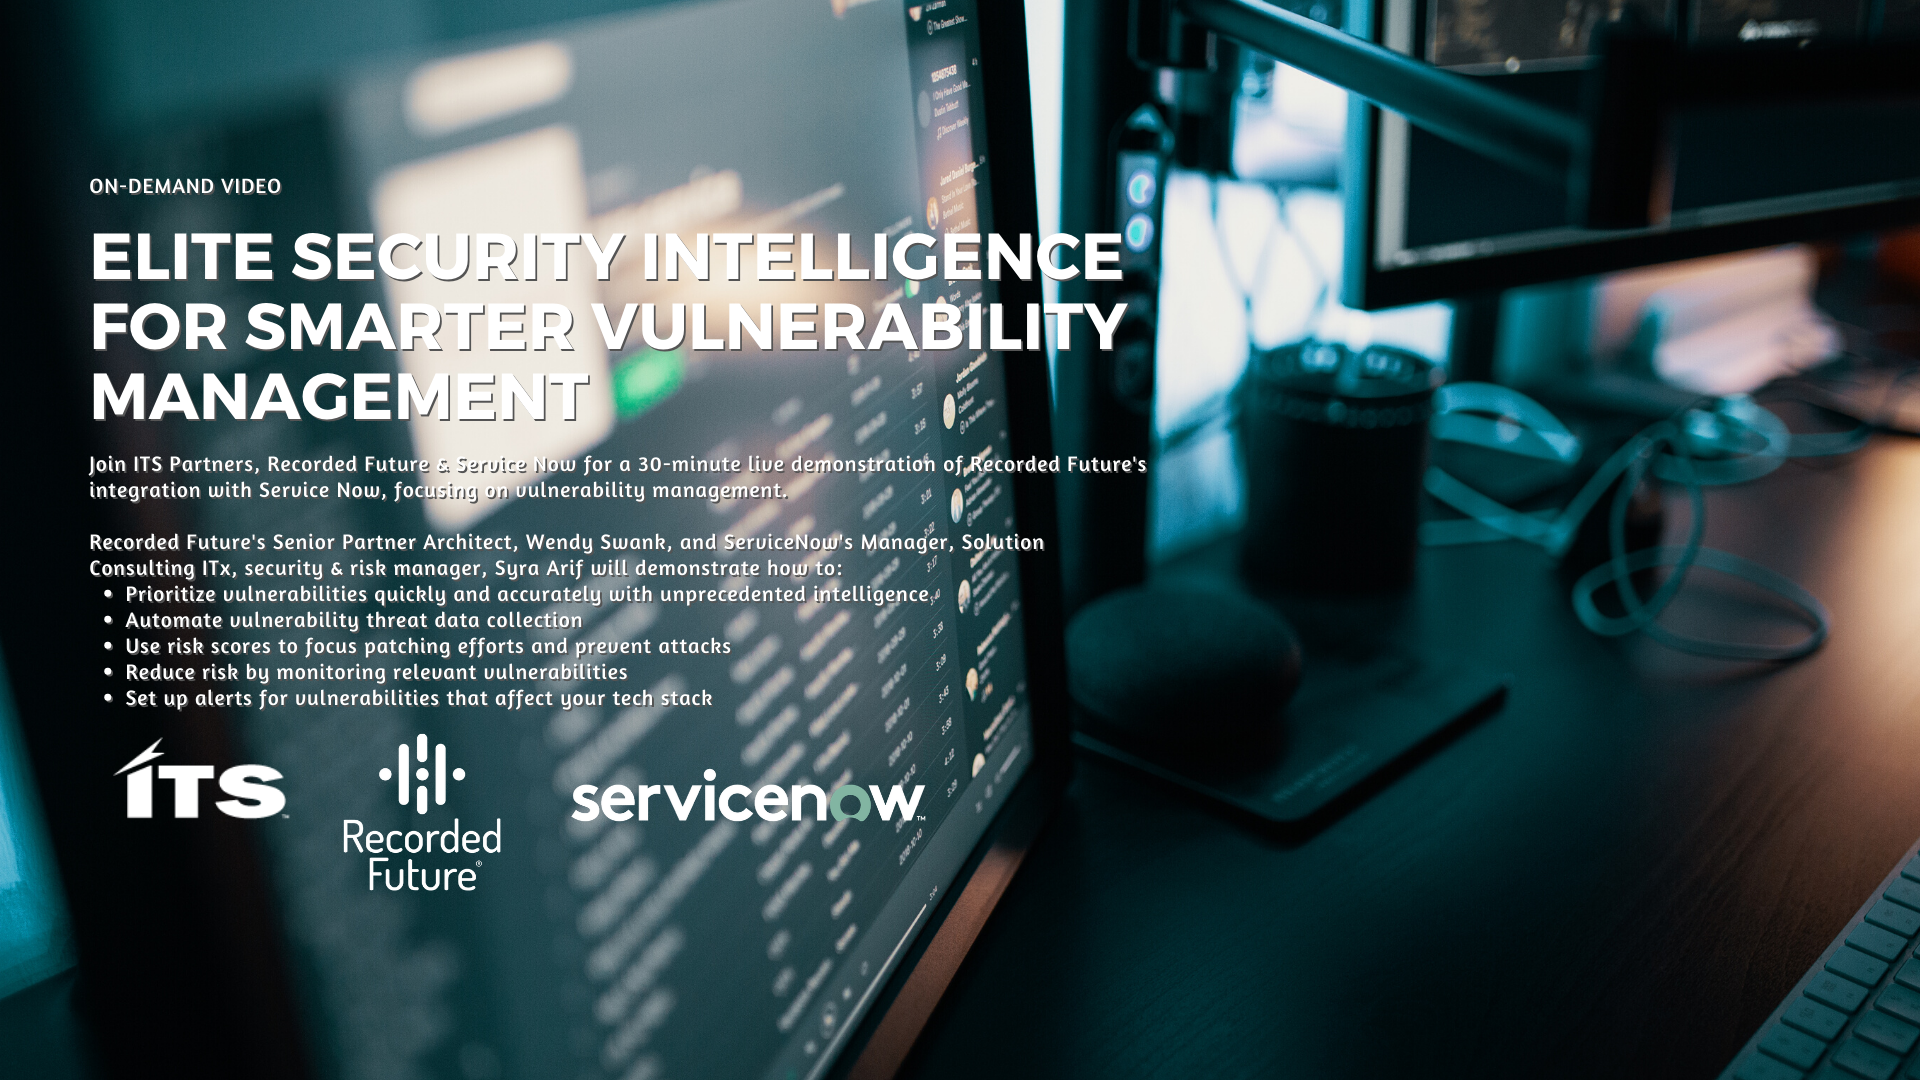 Elite Security Intelligence for Smarter Vulnerability Management